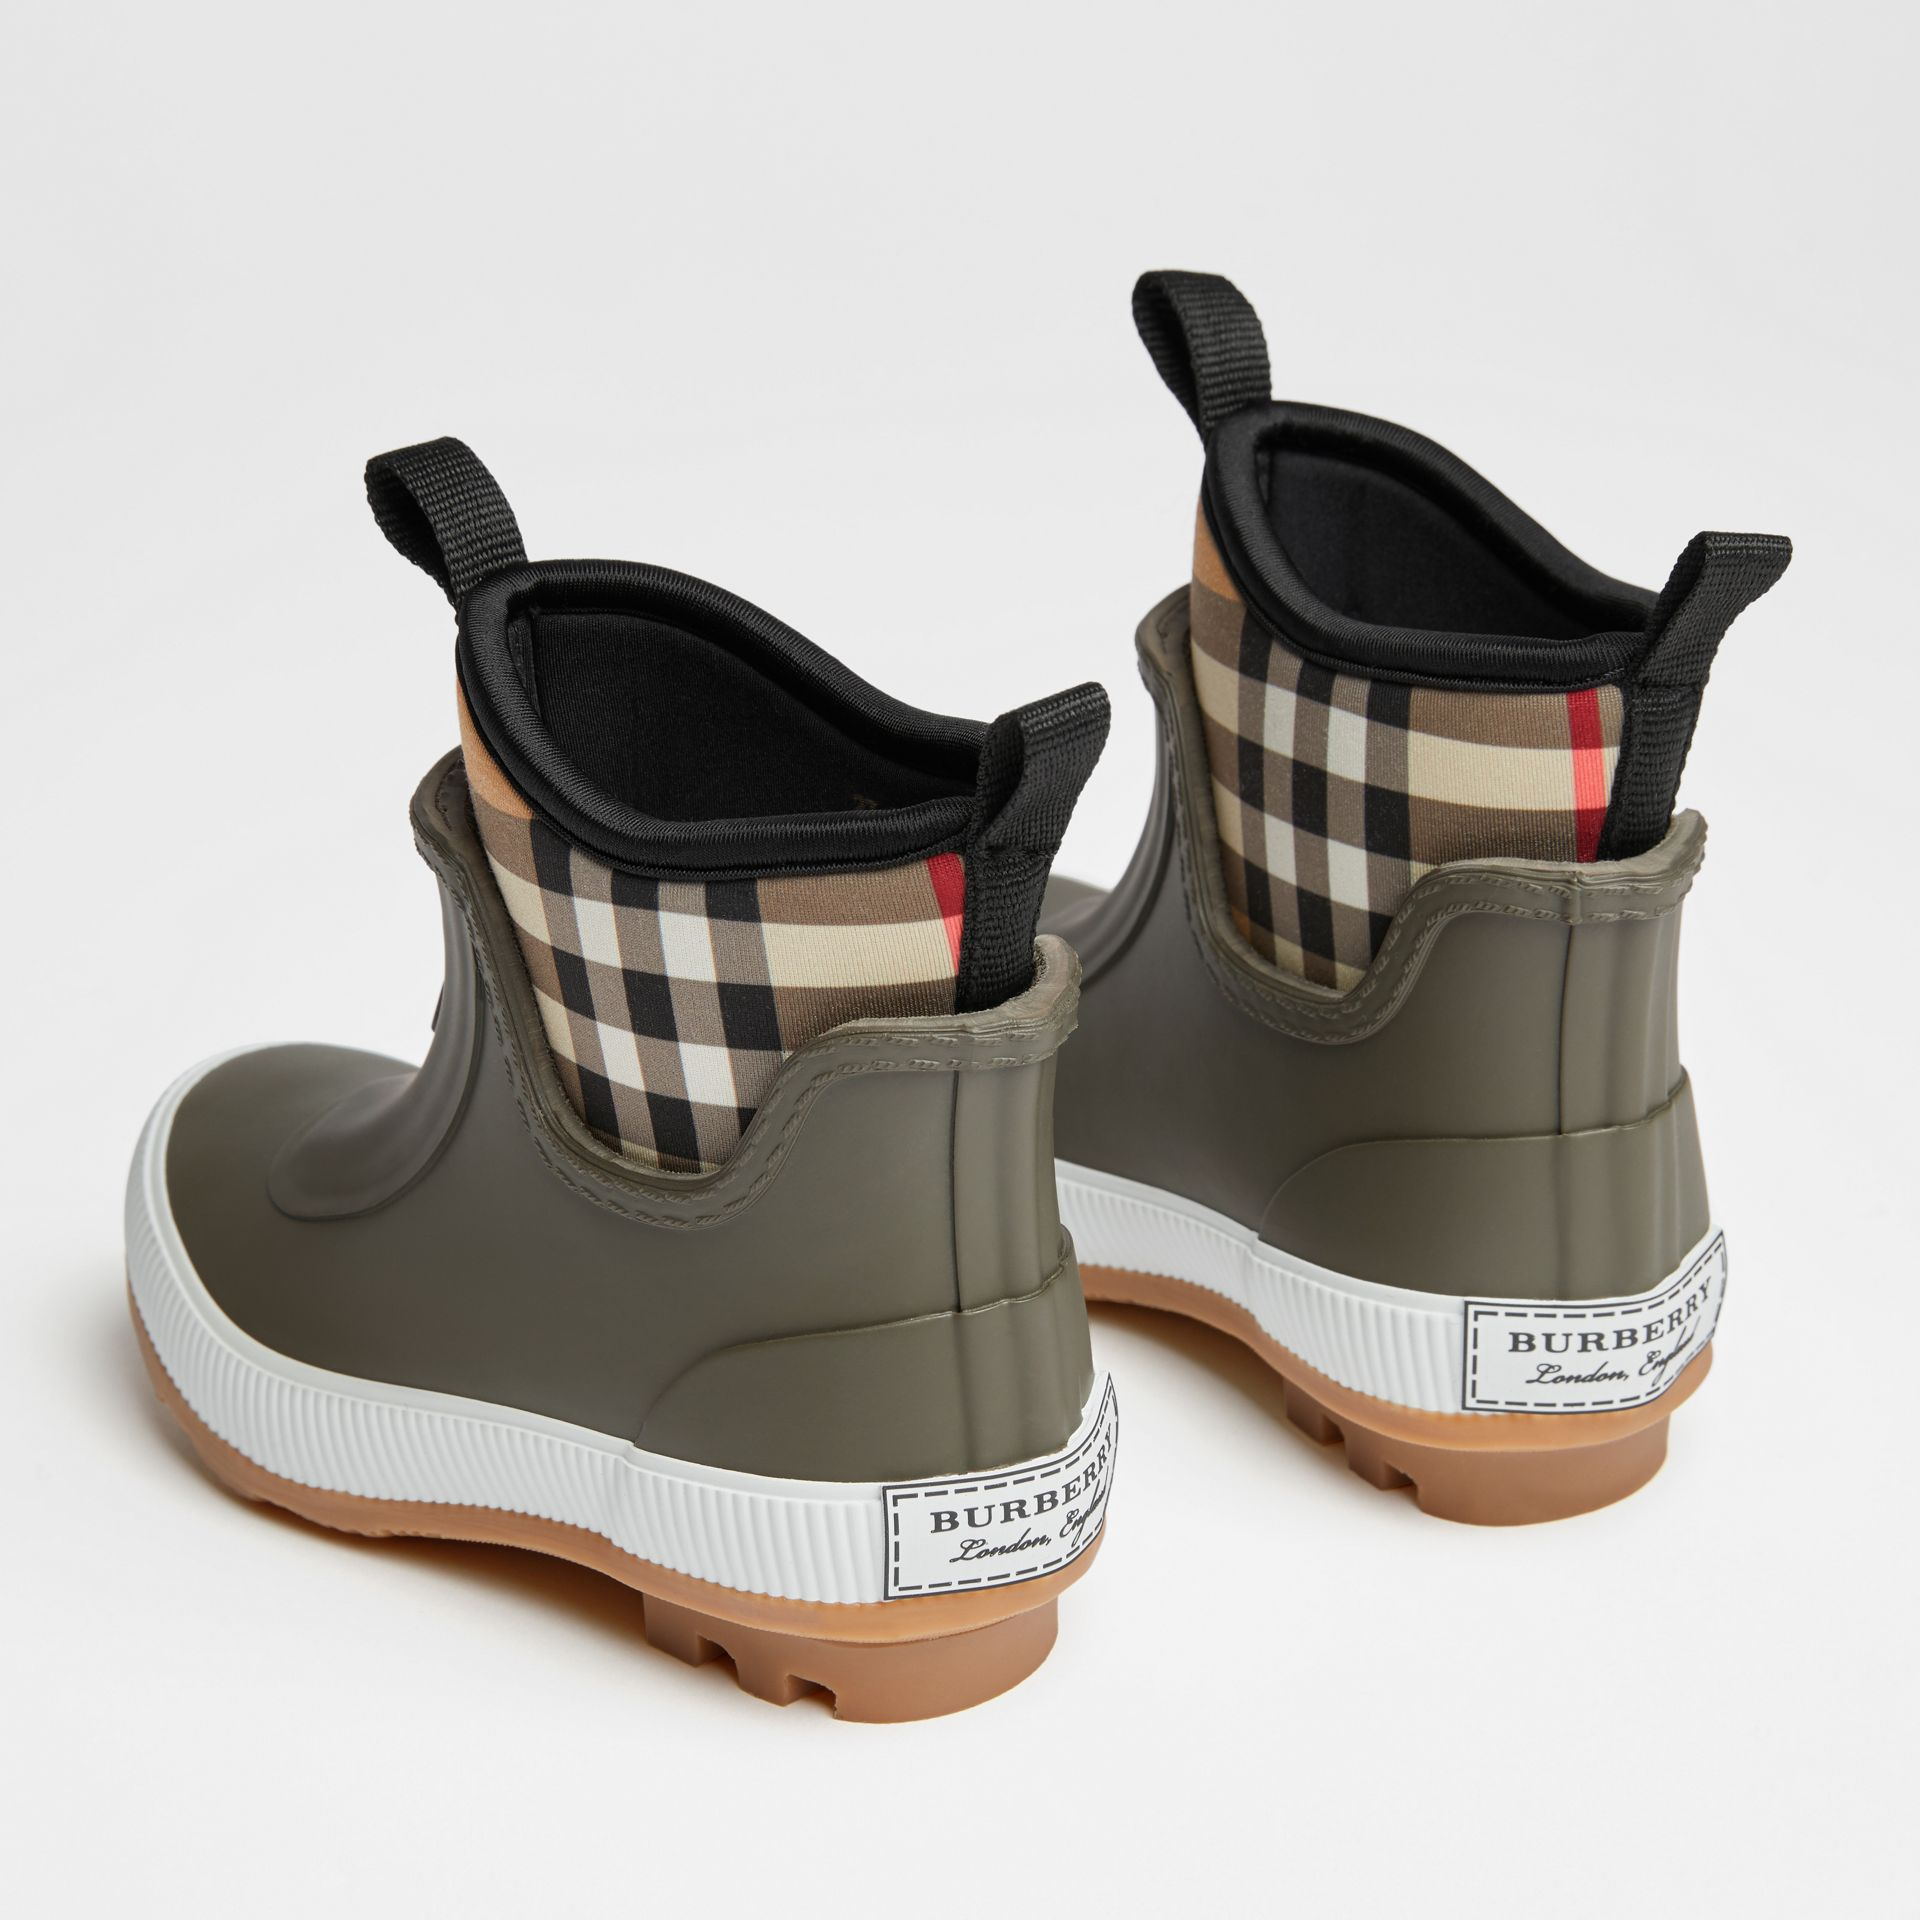 Vintage Check Neoprene and Rubber Rain Boots in Military Green | Burberry Canada - gallery image 2